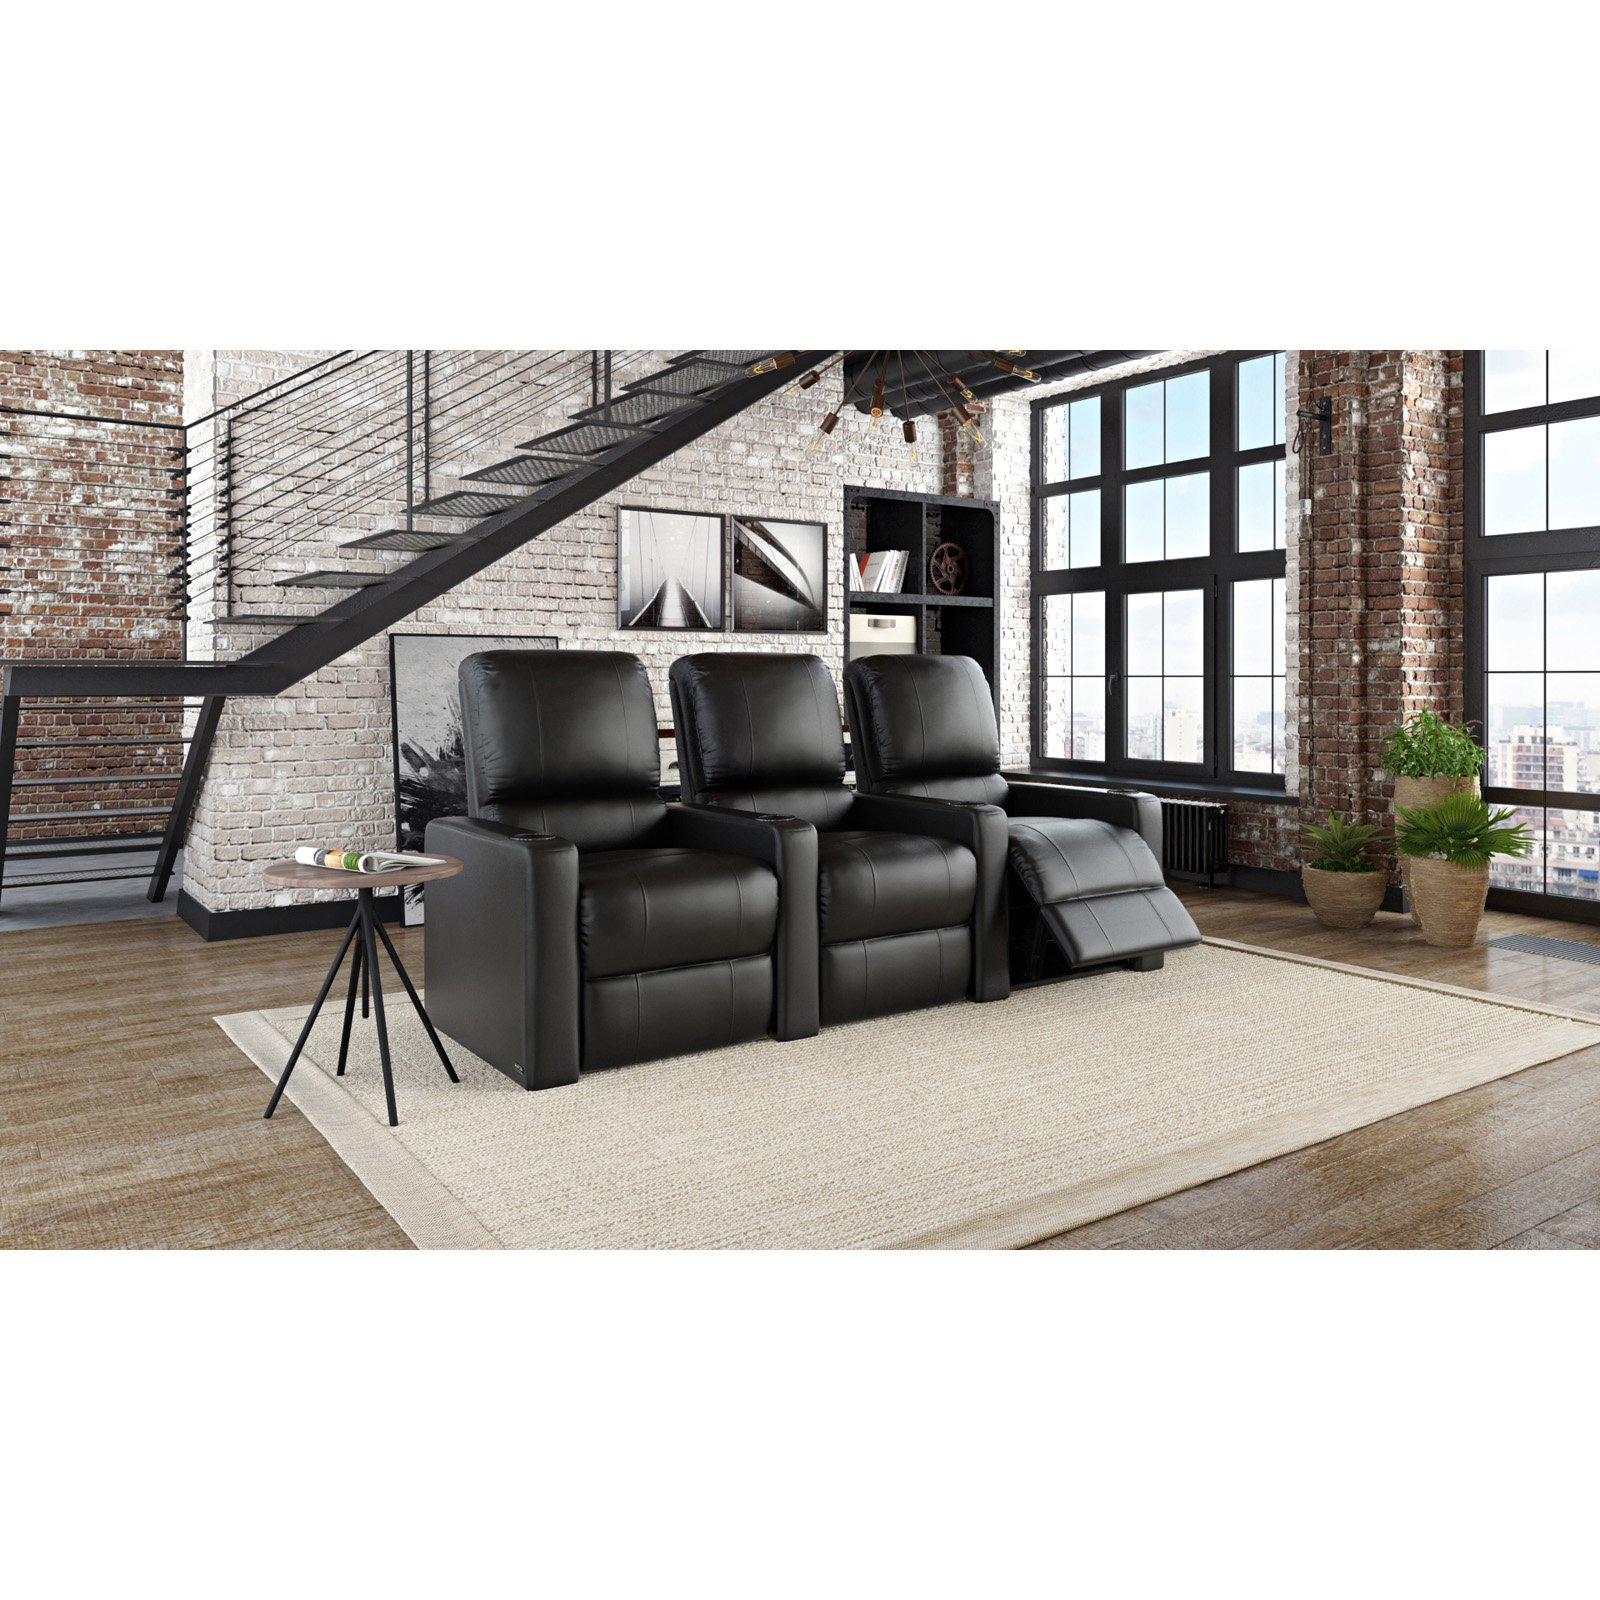 Octane Charger XS300 3 Seater Manual Recline Bonded Leather Home Theater Seating